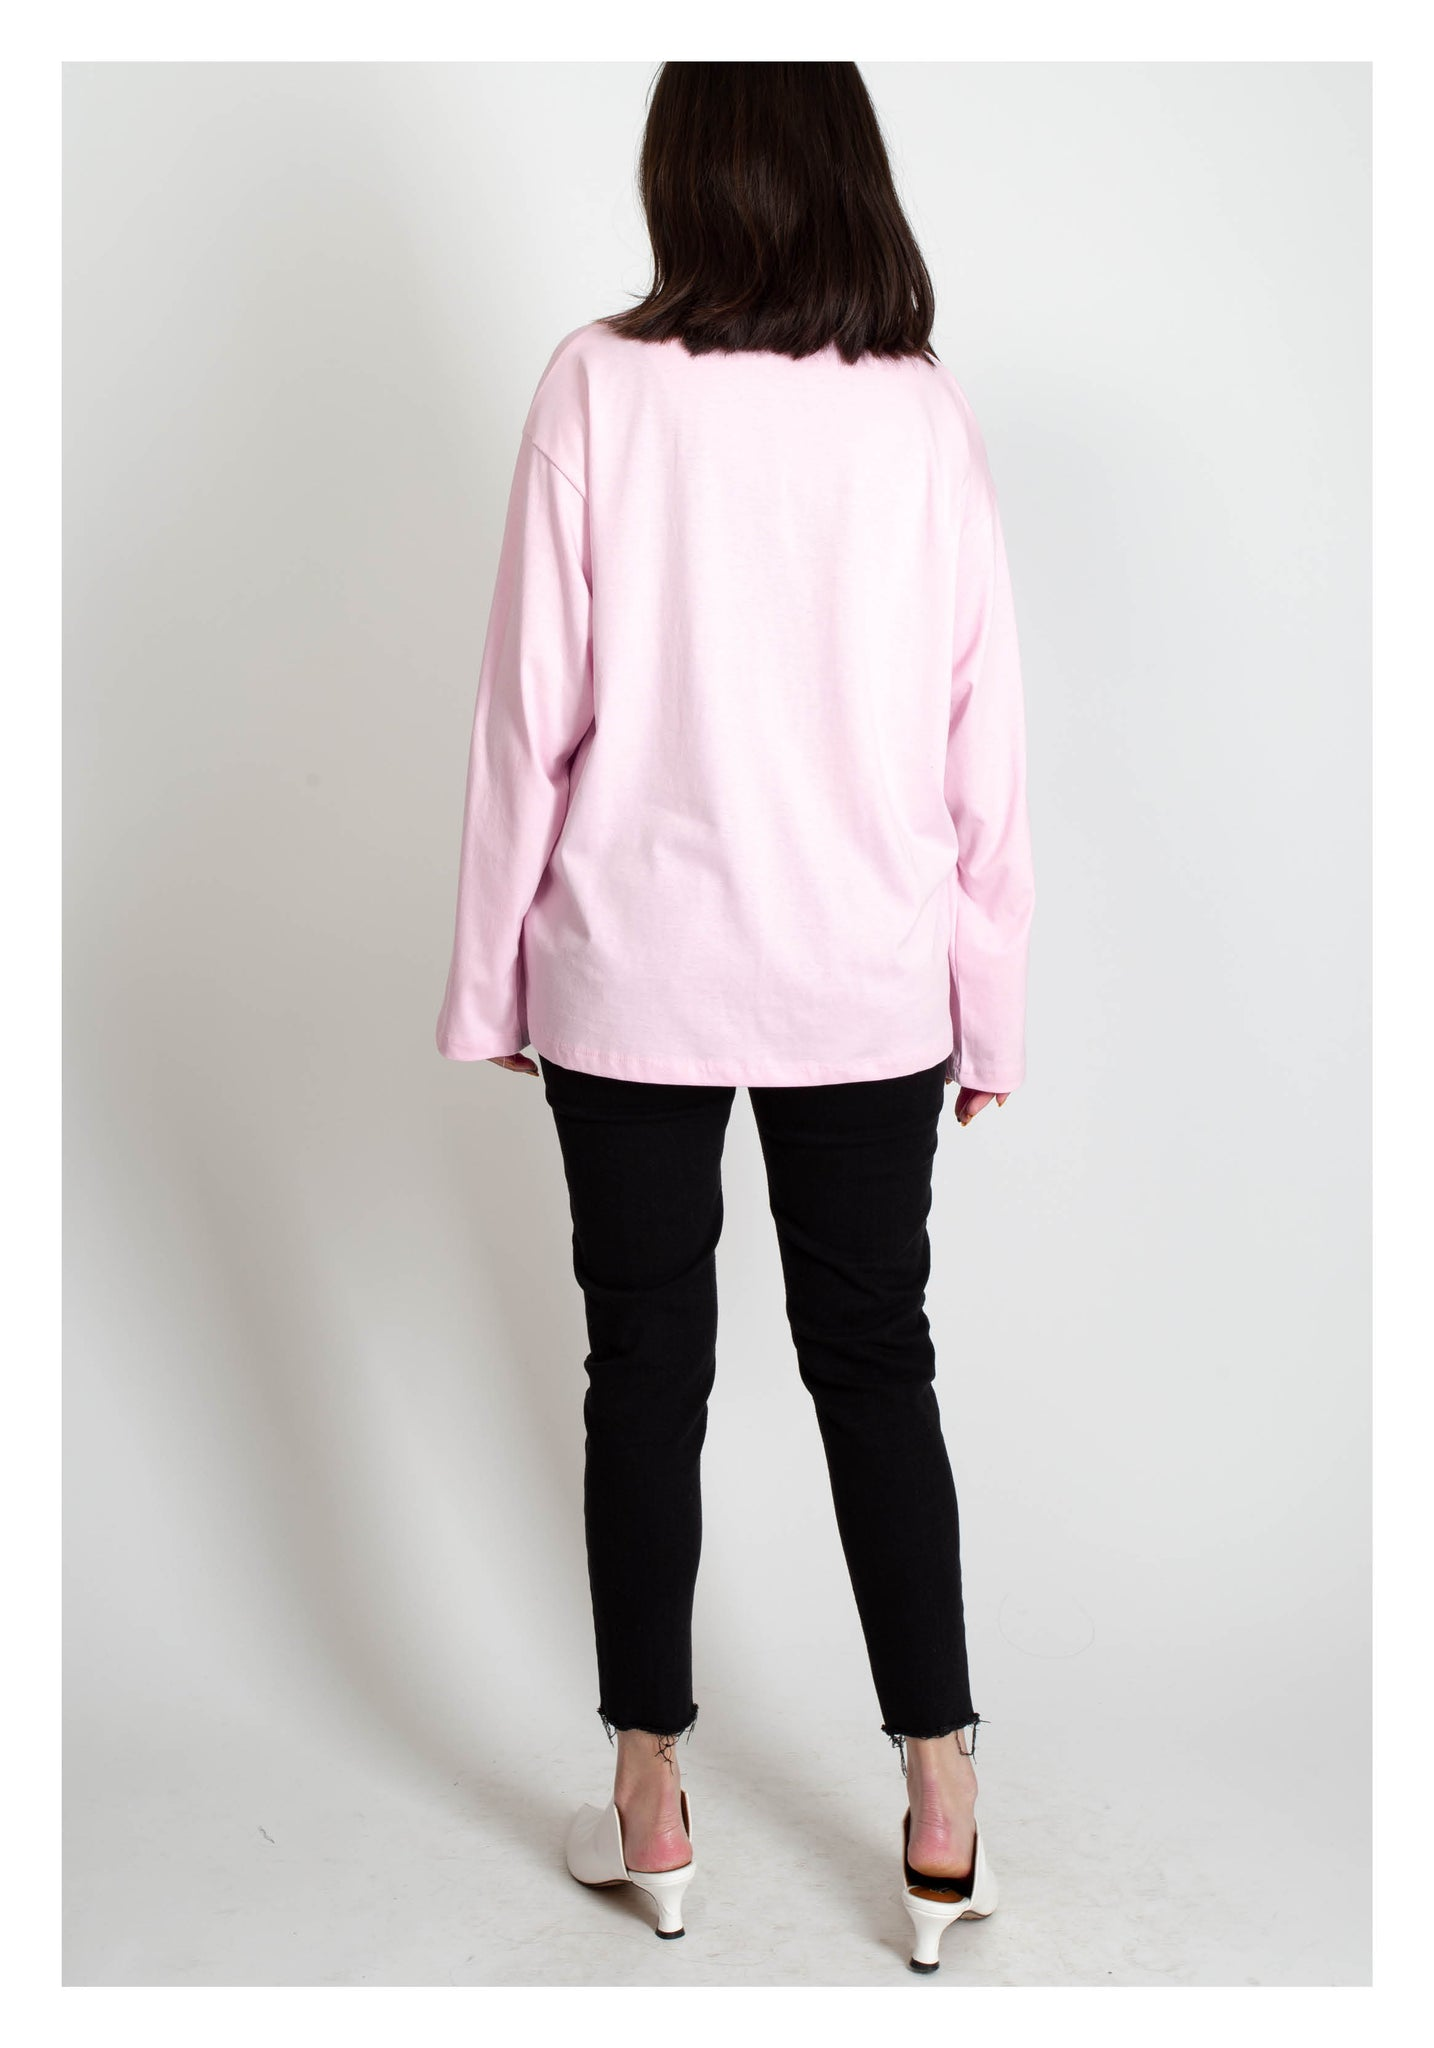 Essential Message Tee Pink - whoami